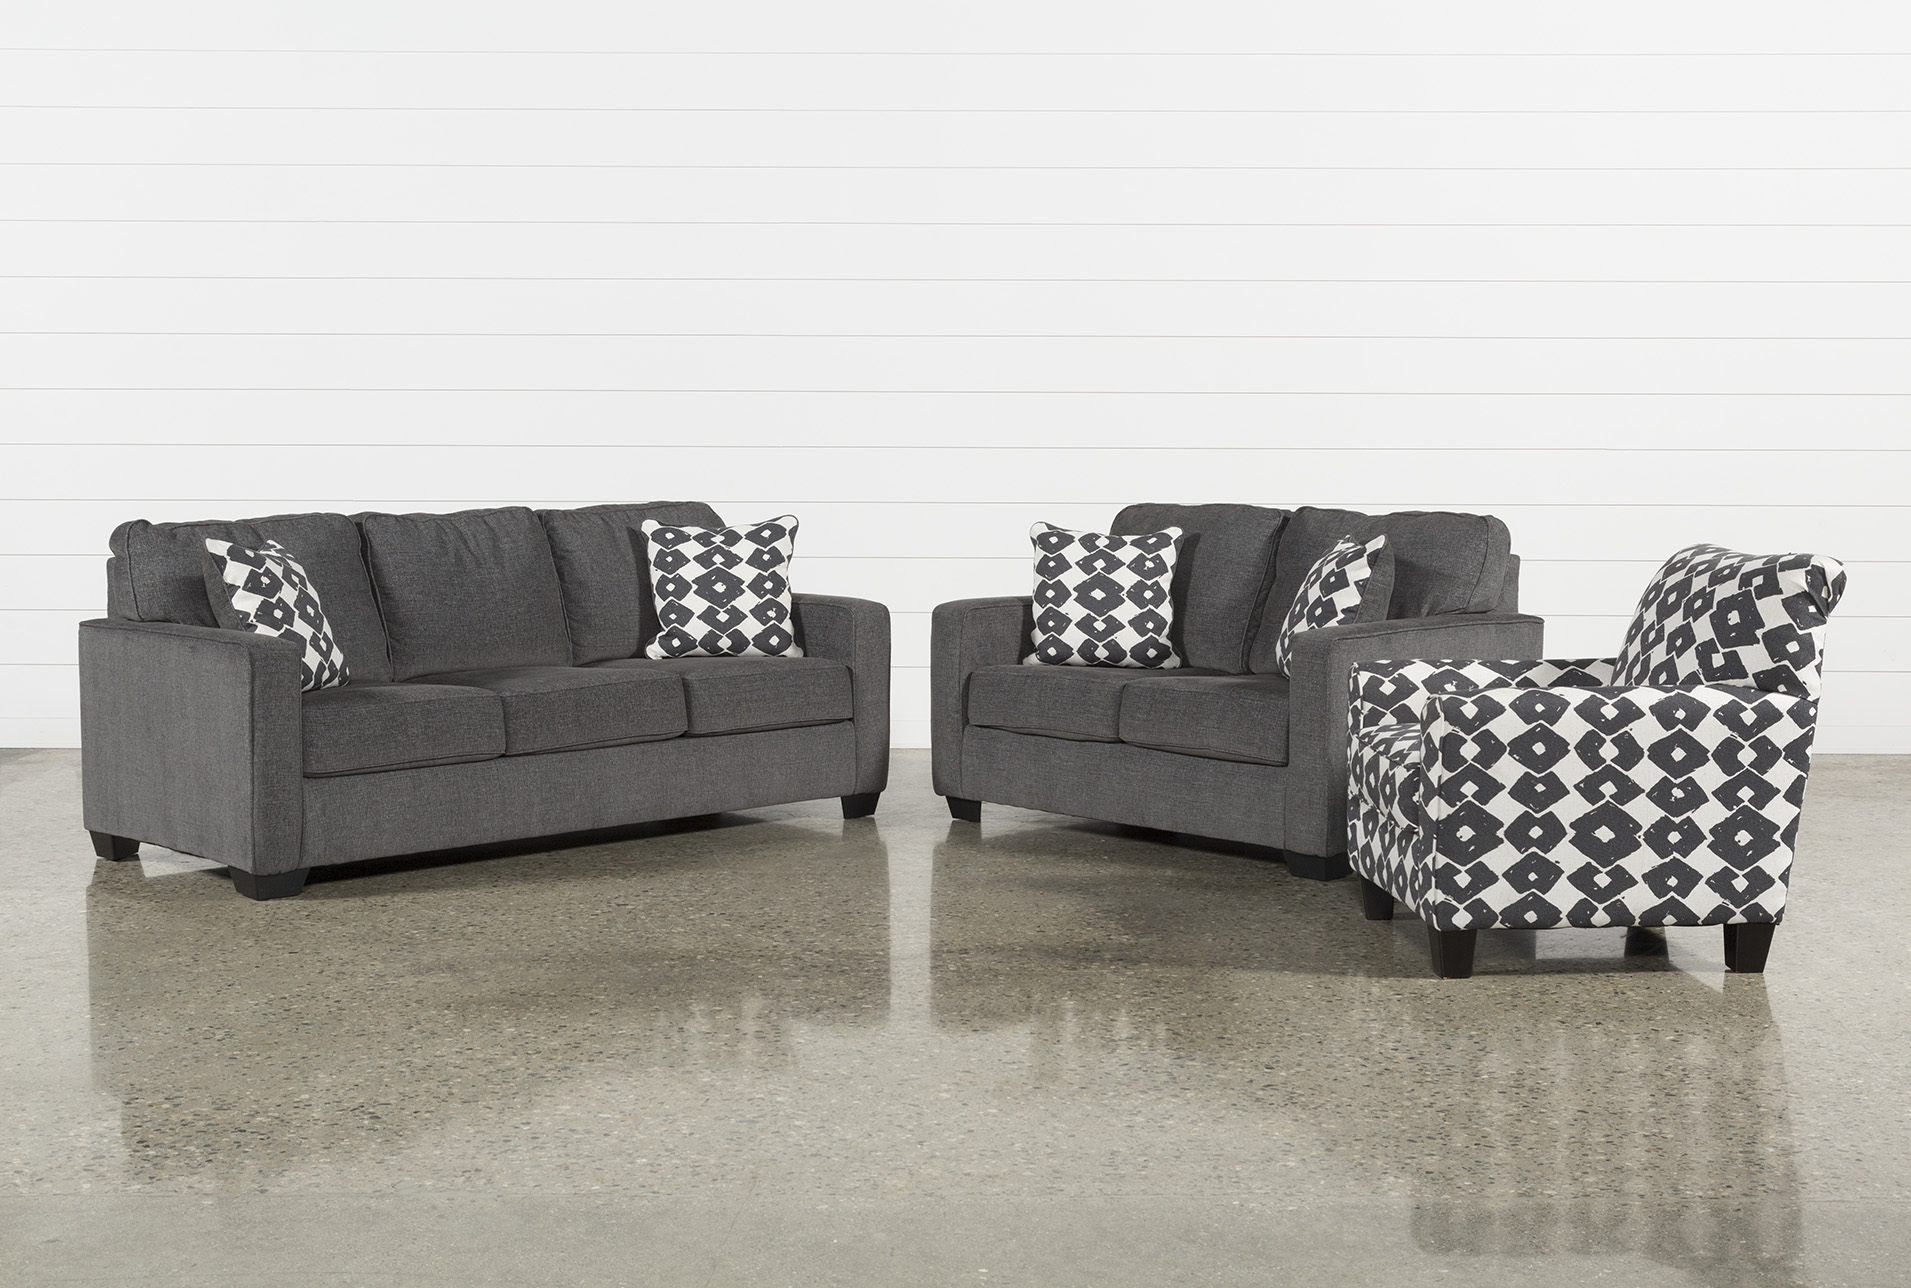 Turdur 3 Piece Living Room Set